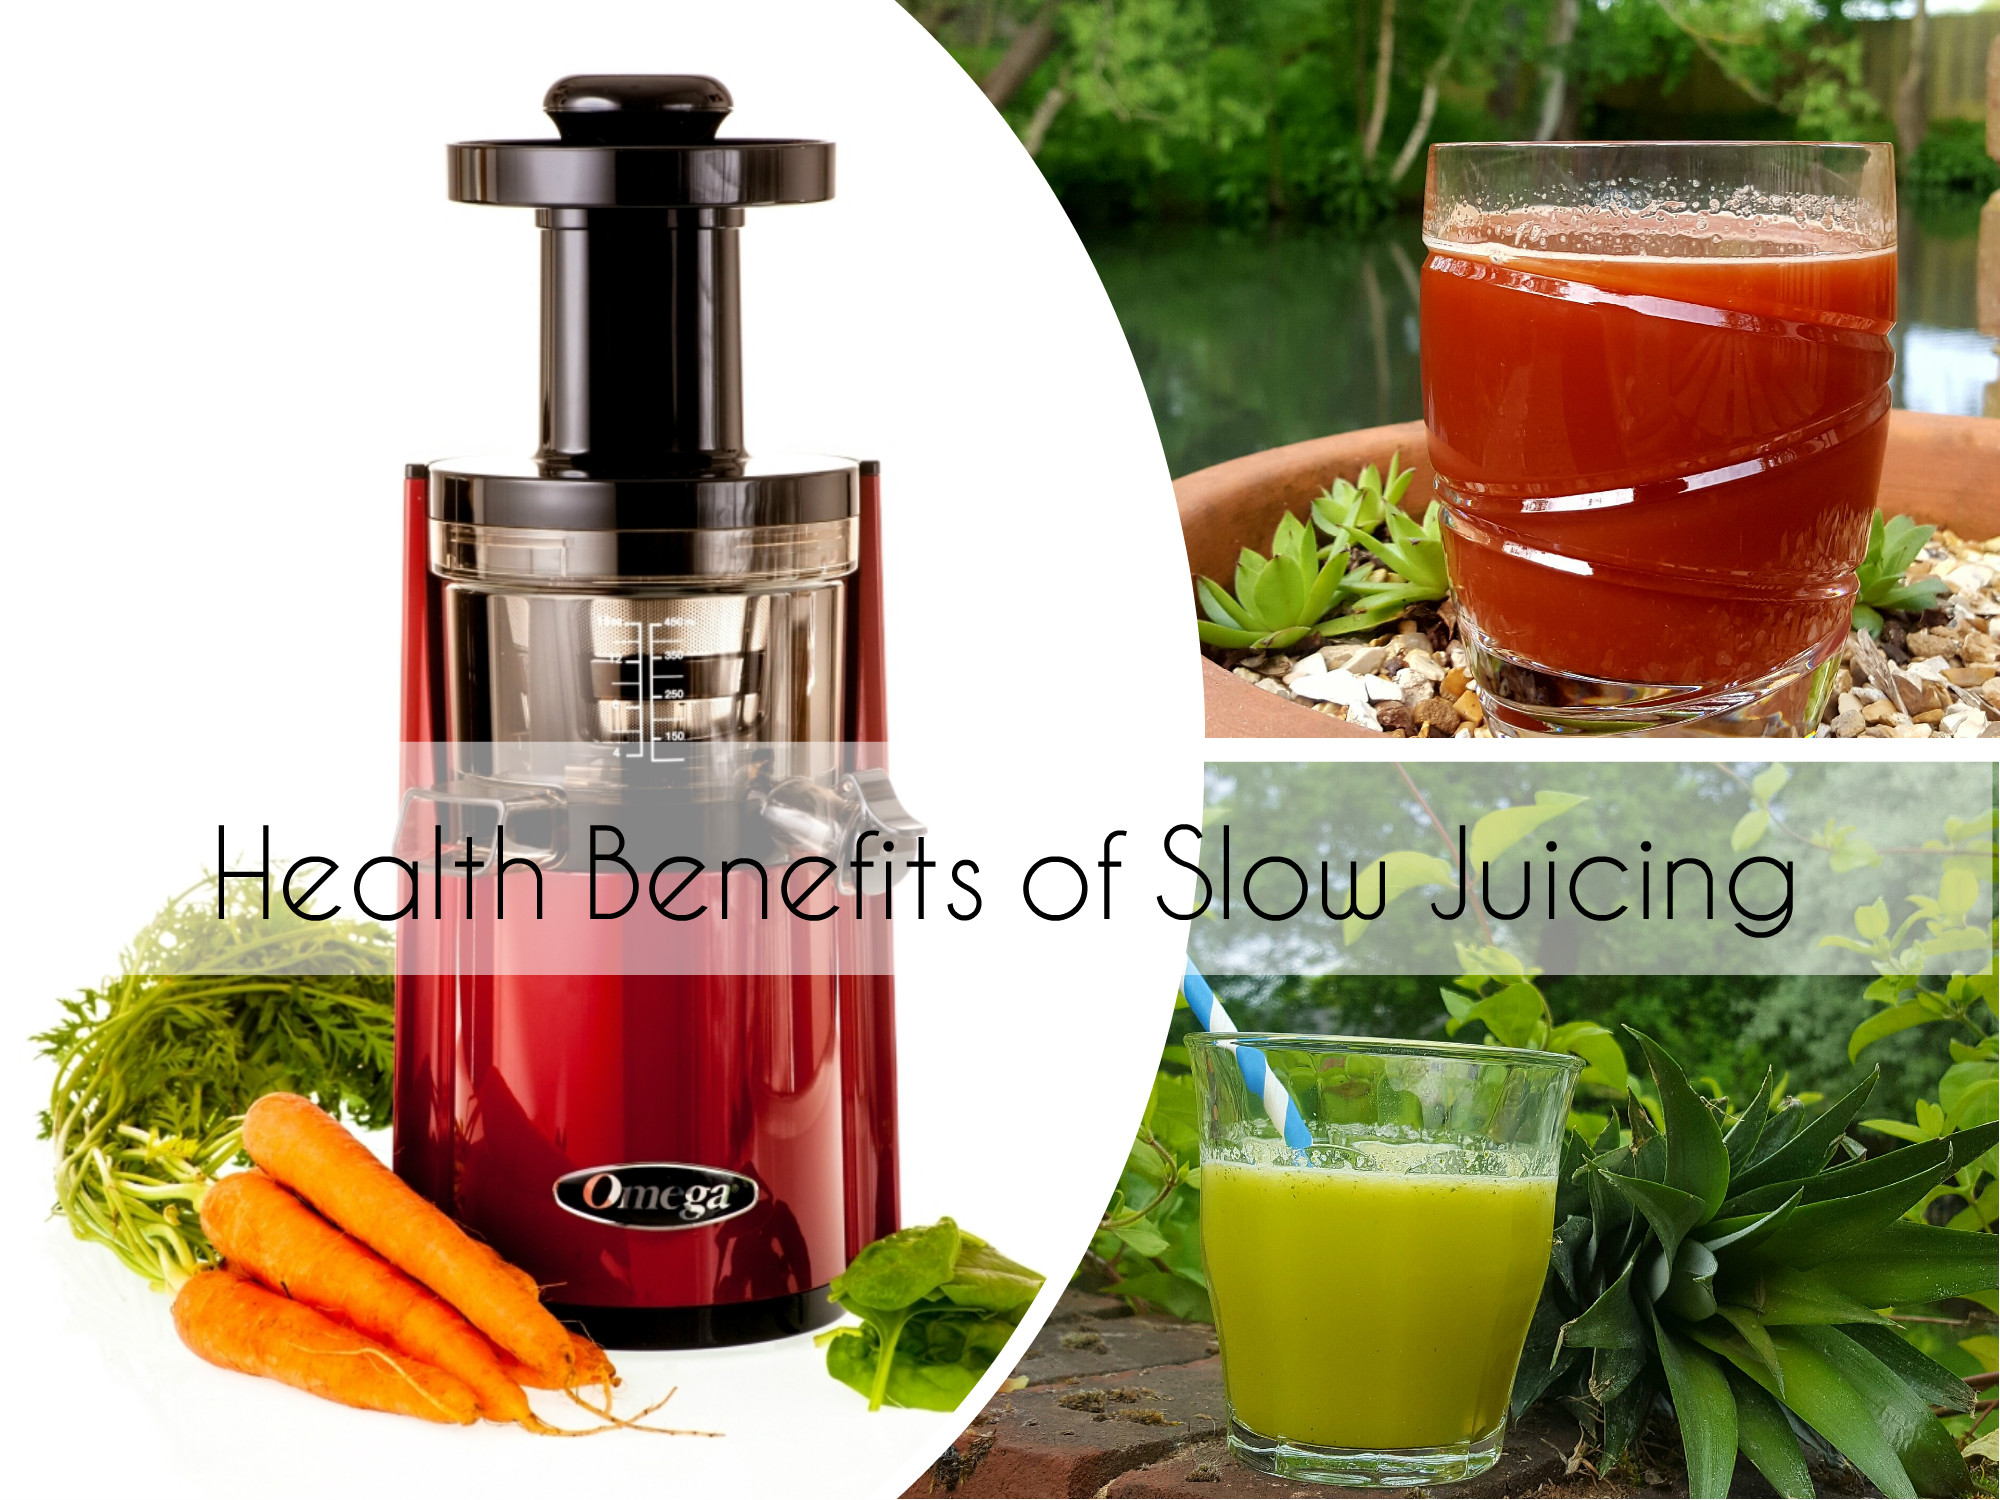 Is Slow Juicing Good : Health Benefits of Slow Juicing for Women over 50 Fab ...